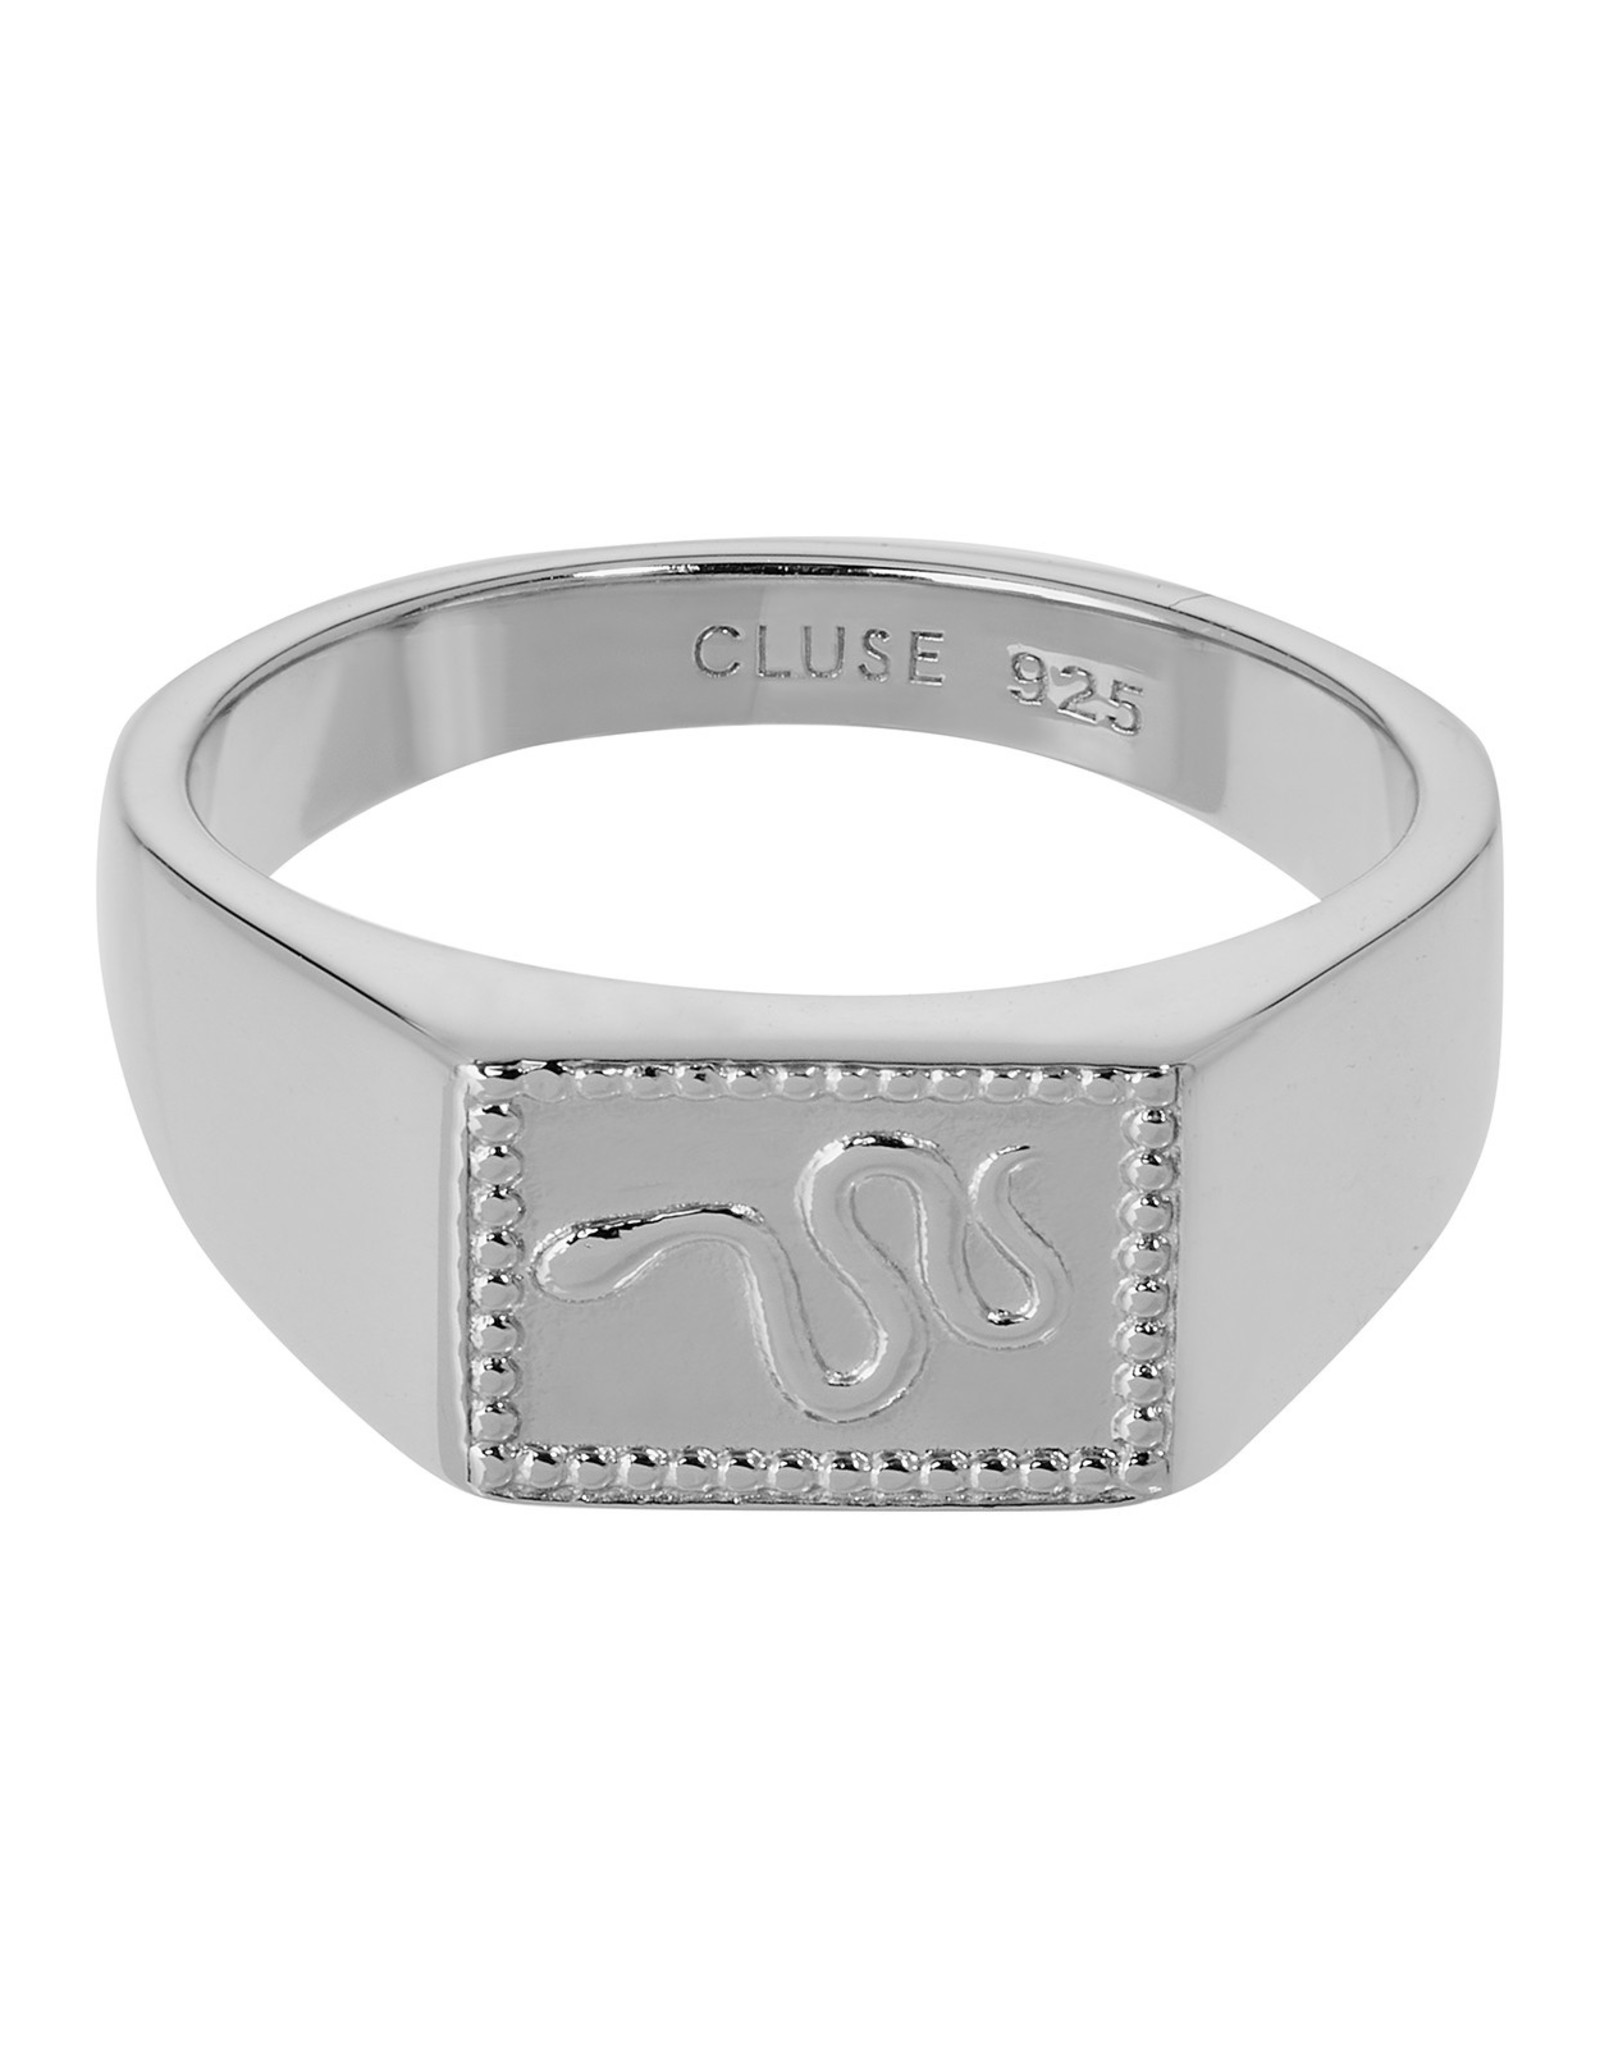 Cluse Force Tropicale Ring Signet Rectangular Silver 54